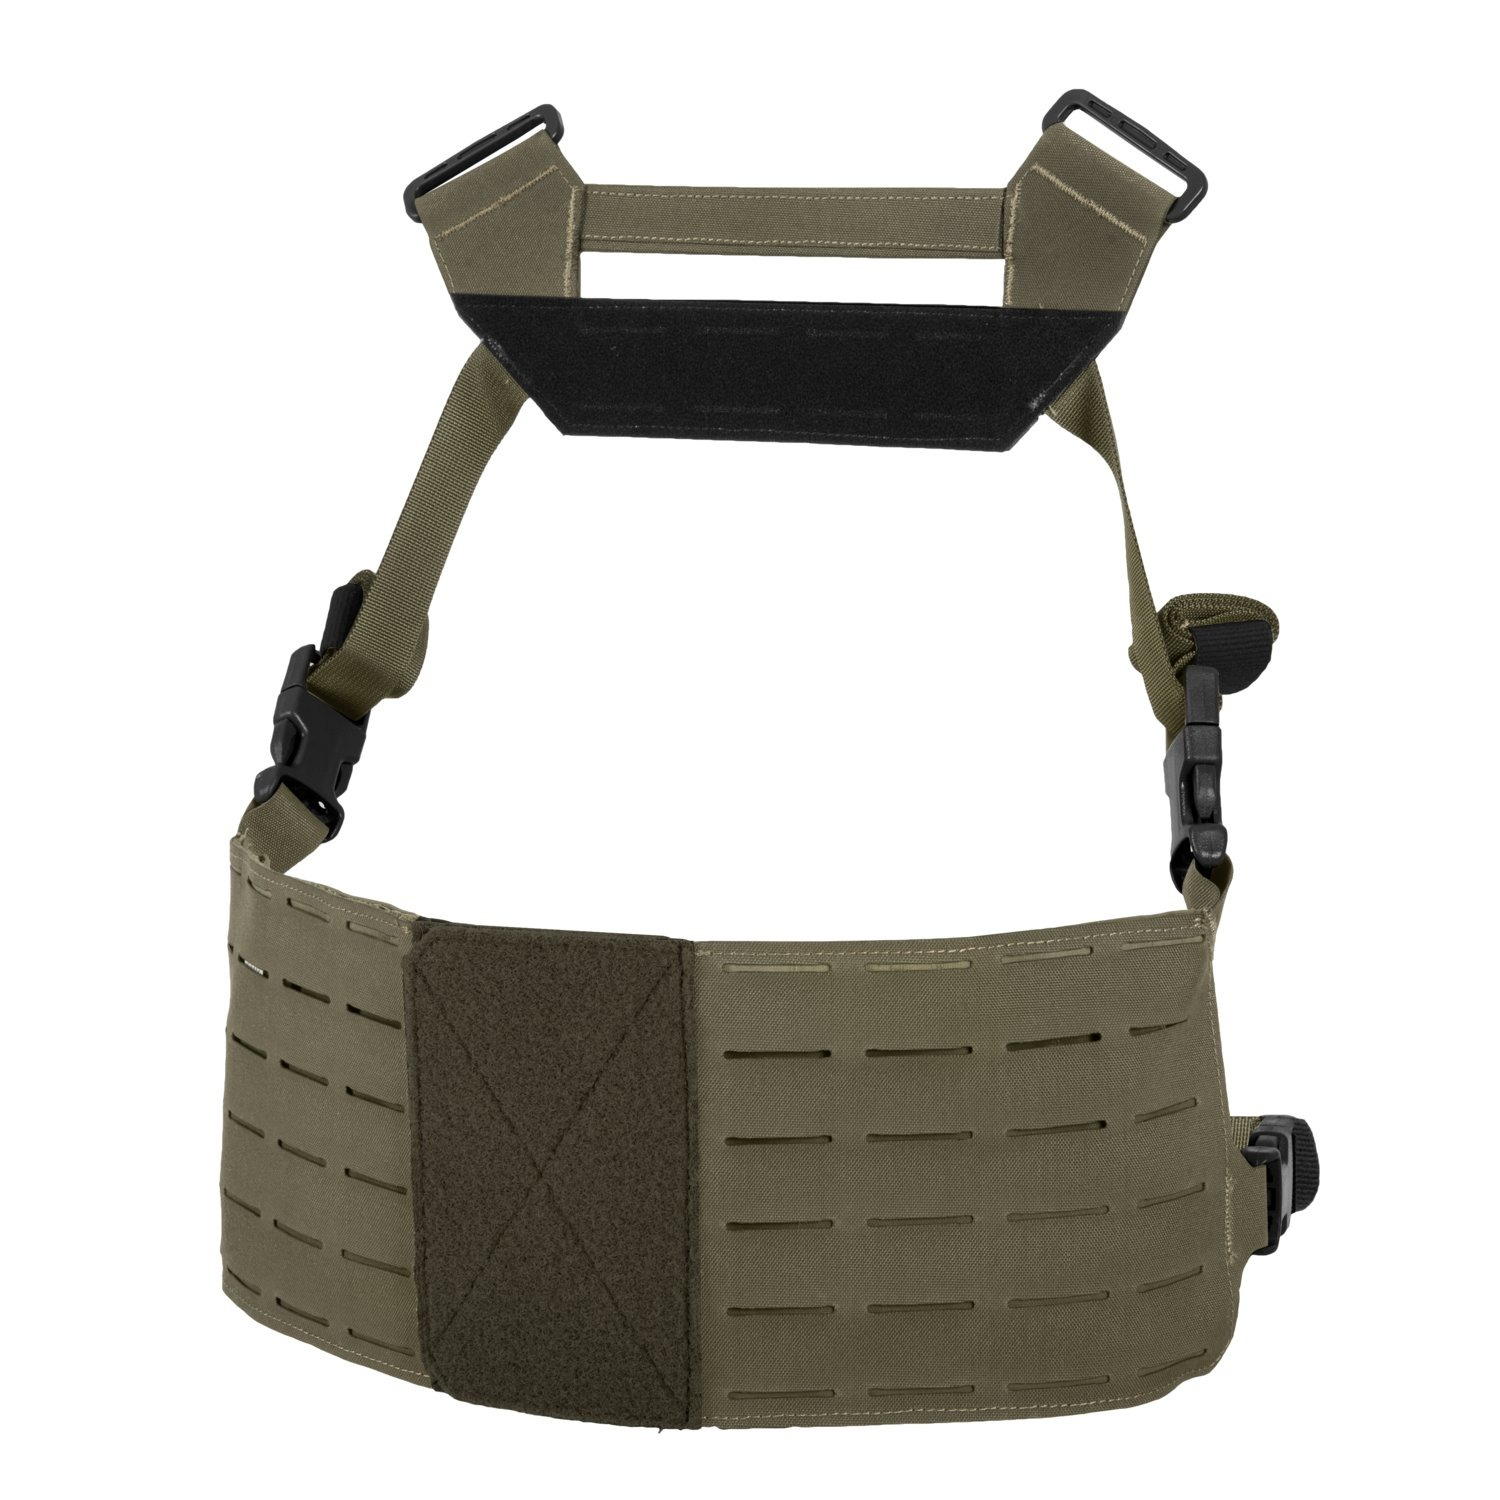 Image of Interfejs spitfire direct action mk ii chest rig - cordura - ranger green - one size (pc-spci-cd5-rgr)